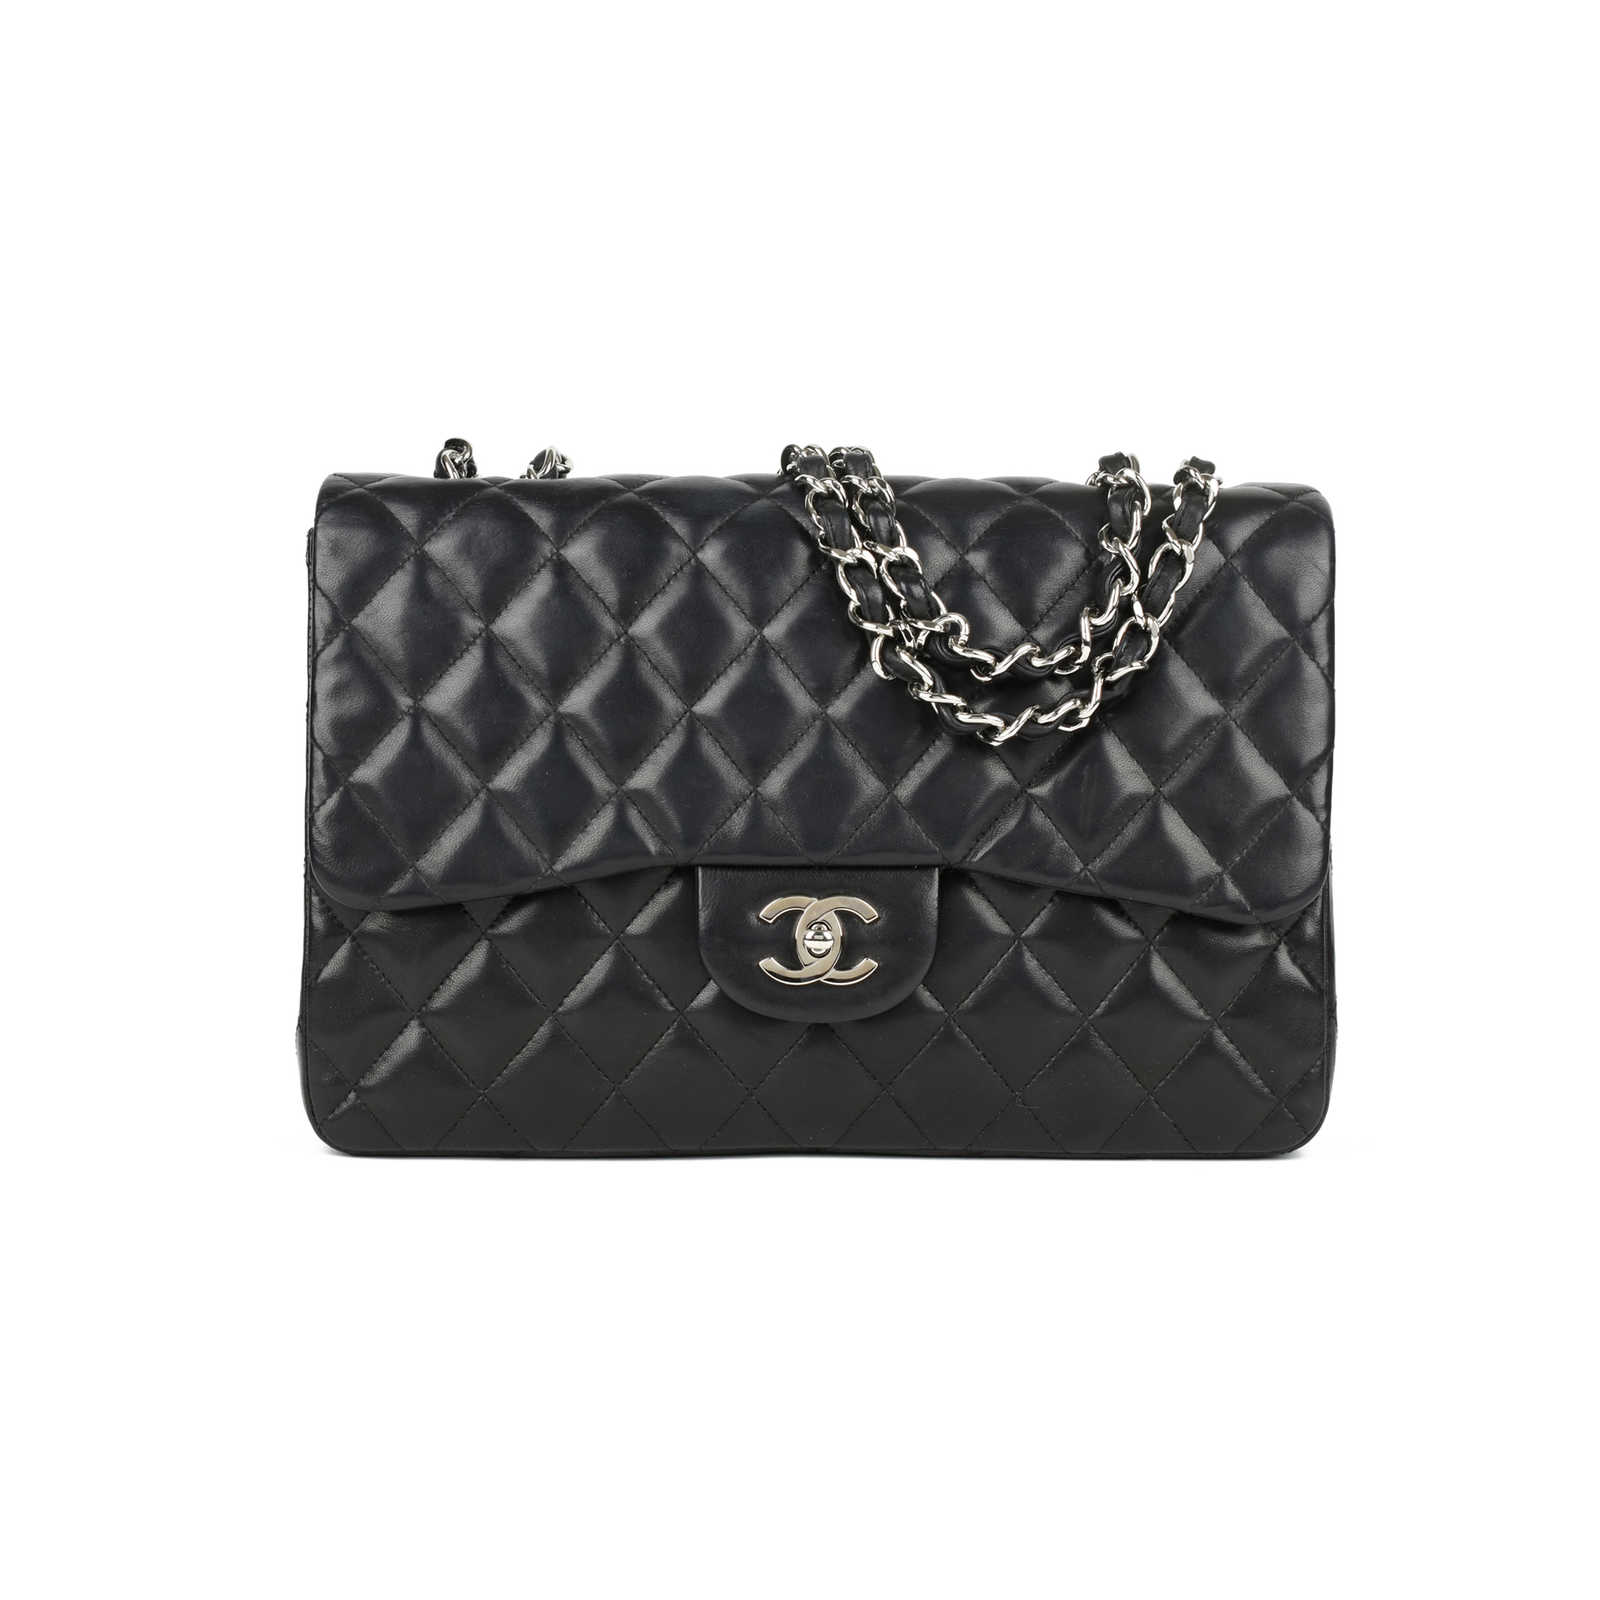 57d08e78575 Authentic Second Hand Chanel Classic Jumbo Flap Bag (PSS-446-00012) ...